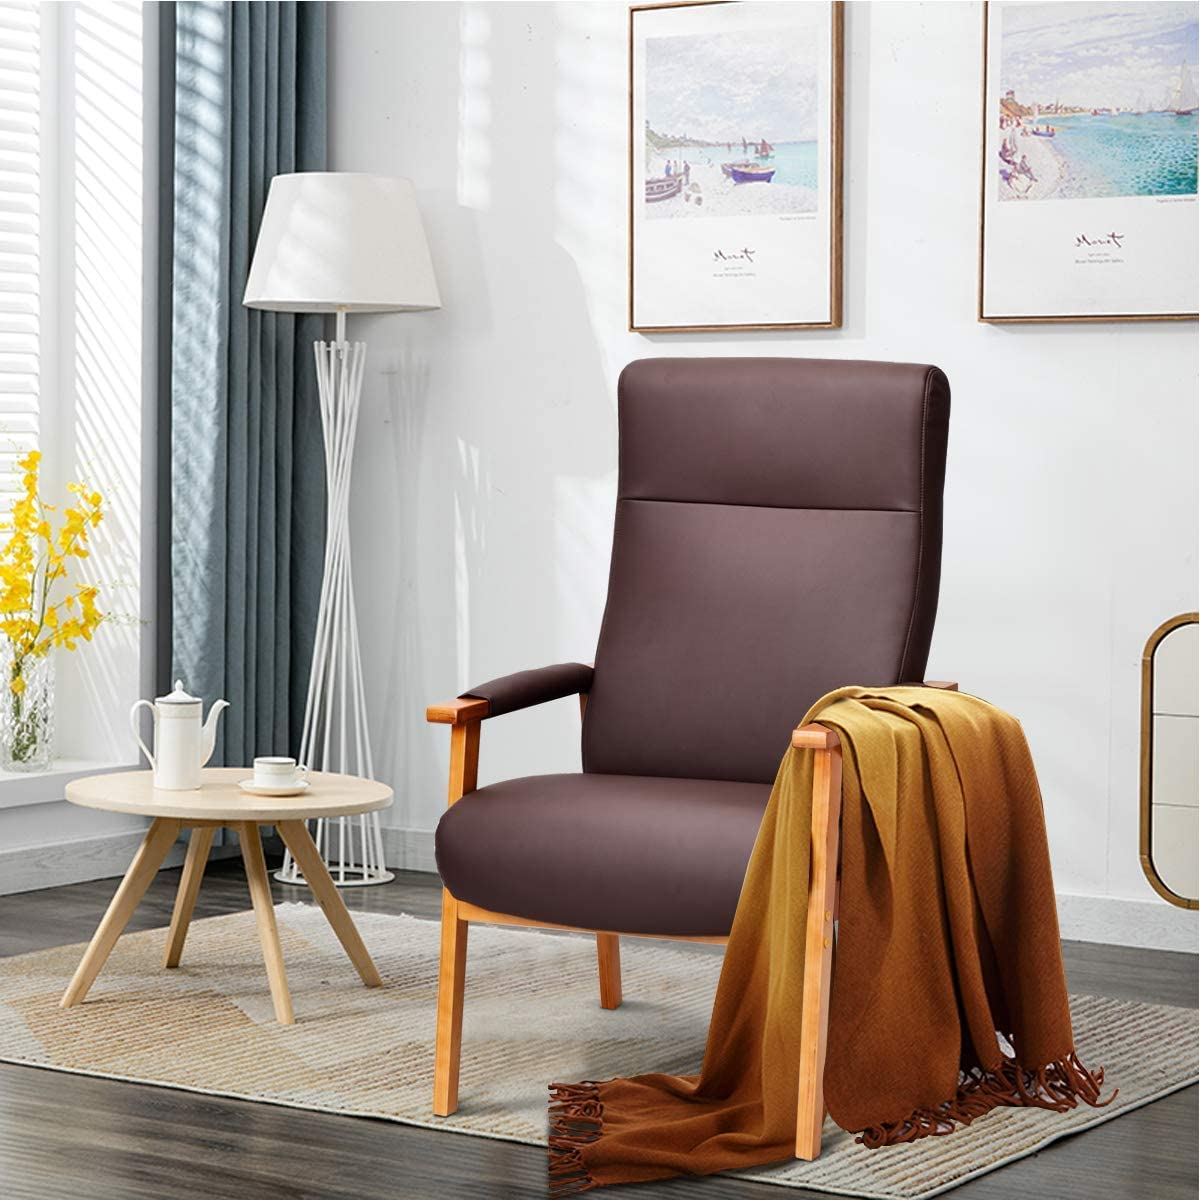 Giantex Accent Arm Chair PU Leather, High Lounge with Comfortable and Removable Cushions, Armrests Club Chair for Living Room, Office, High Back Armchair (Brown)